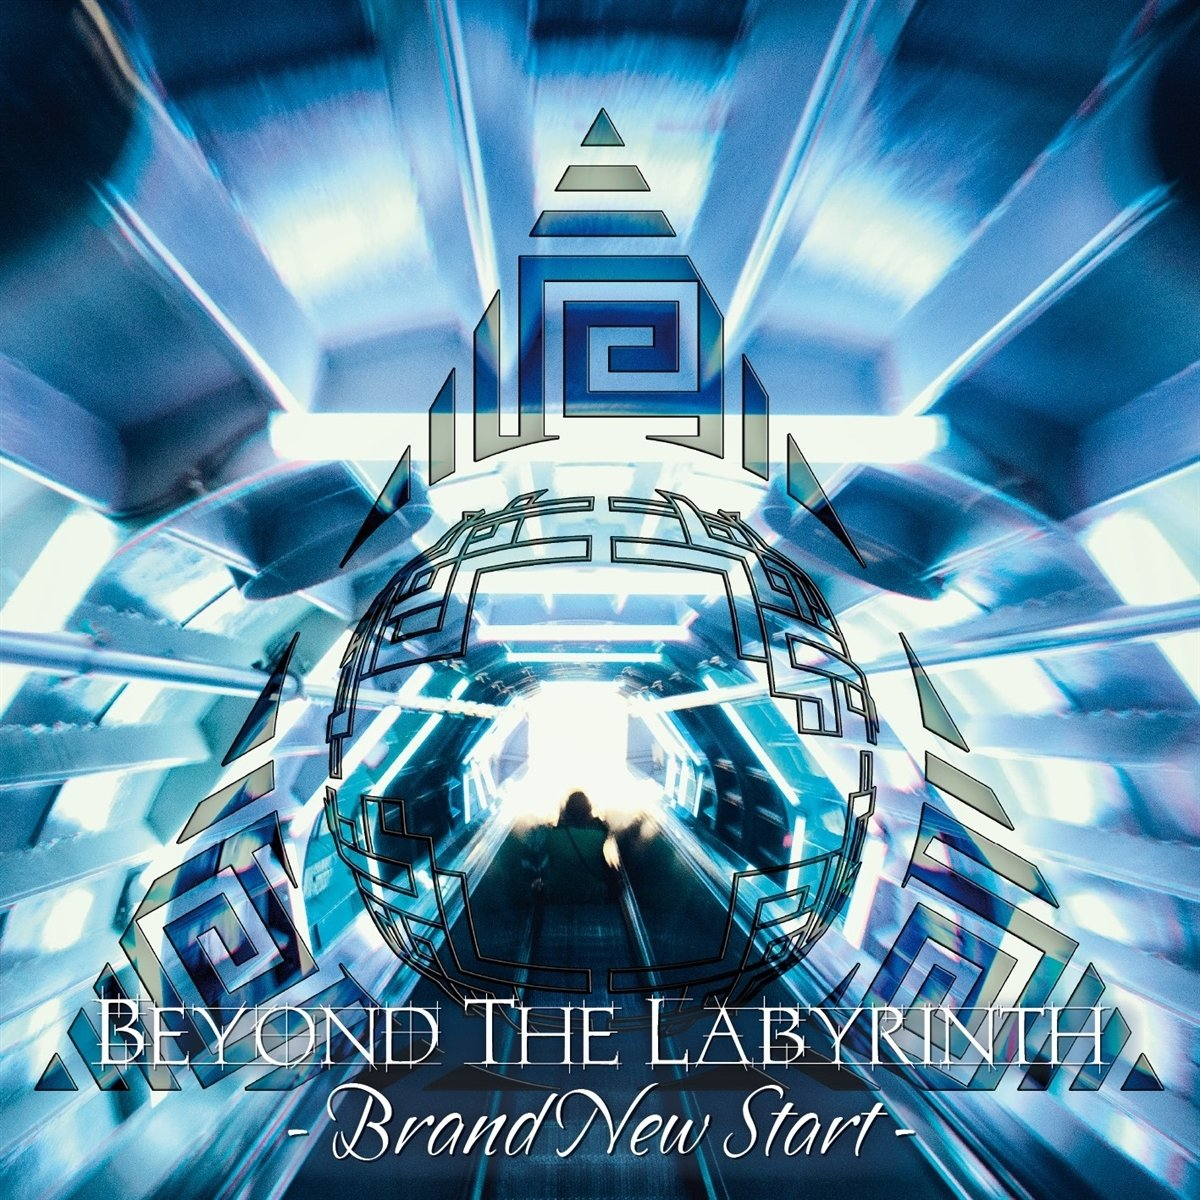 beyond the labyrinth brand new start album cover